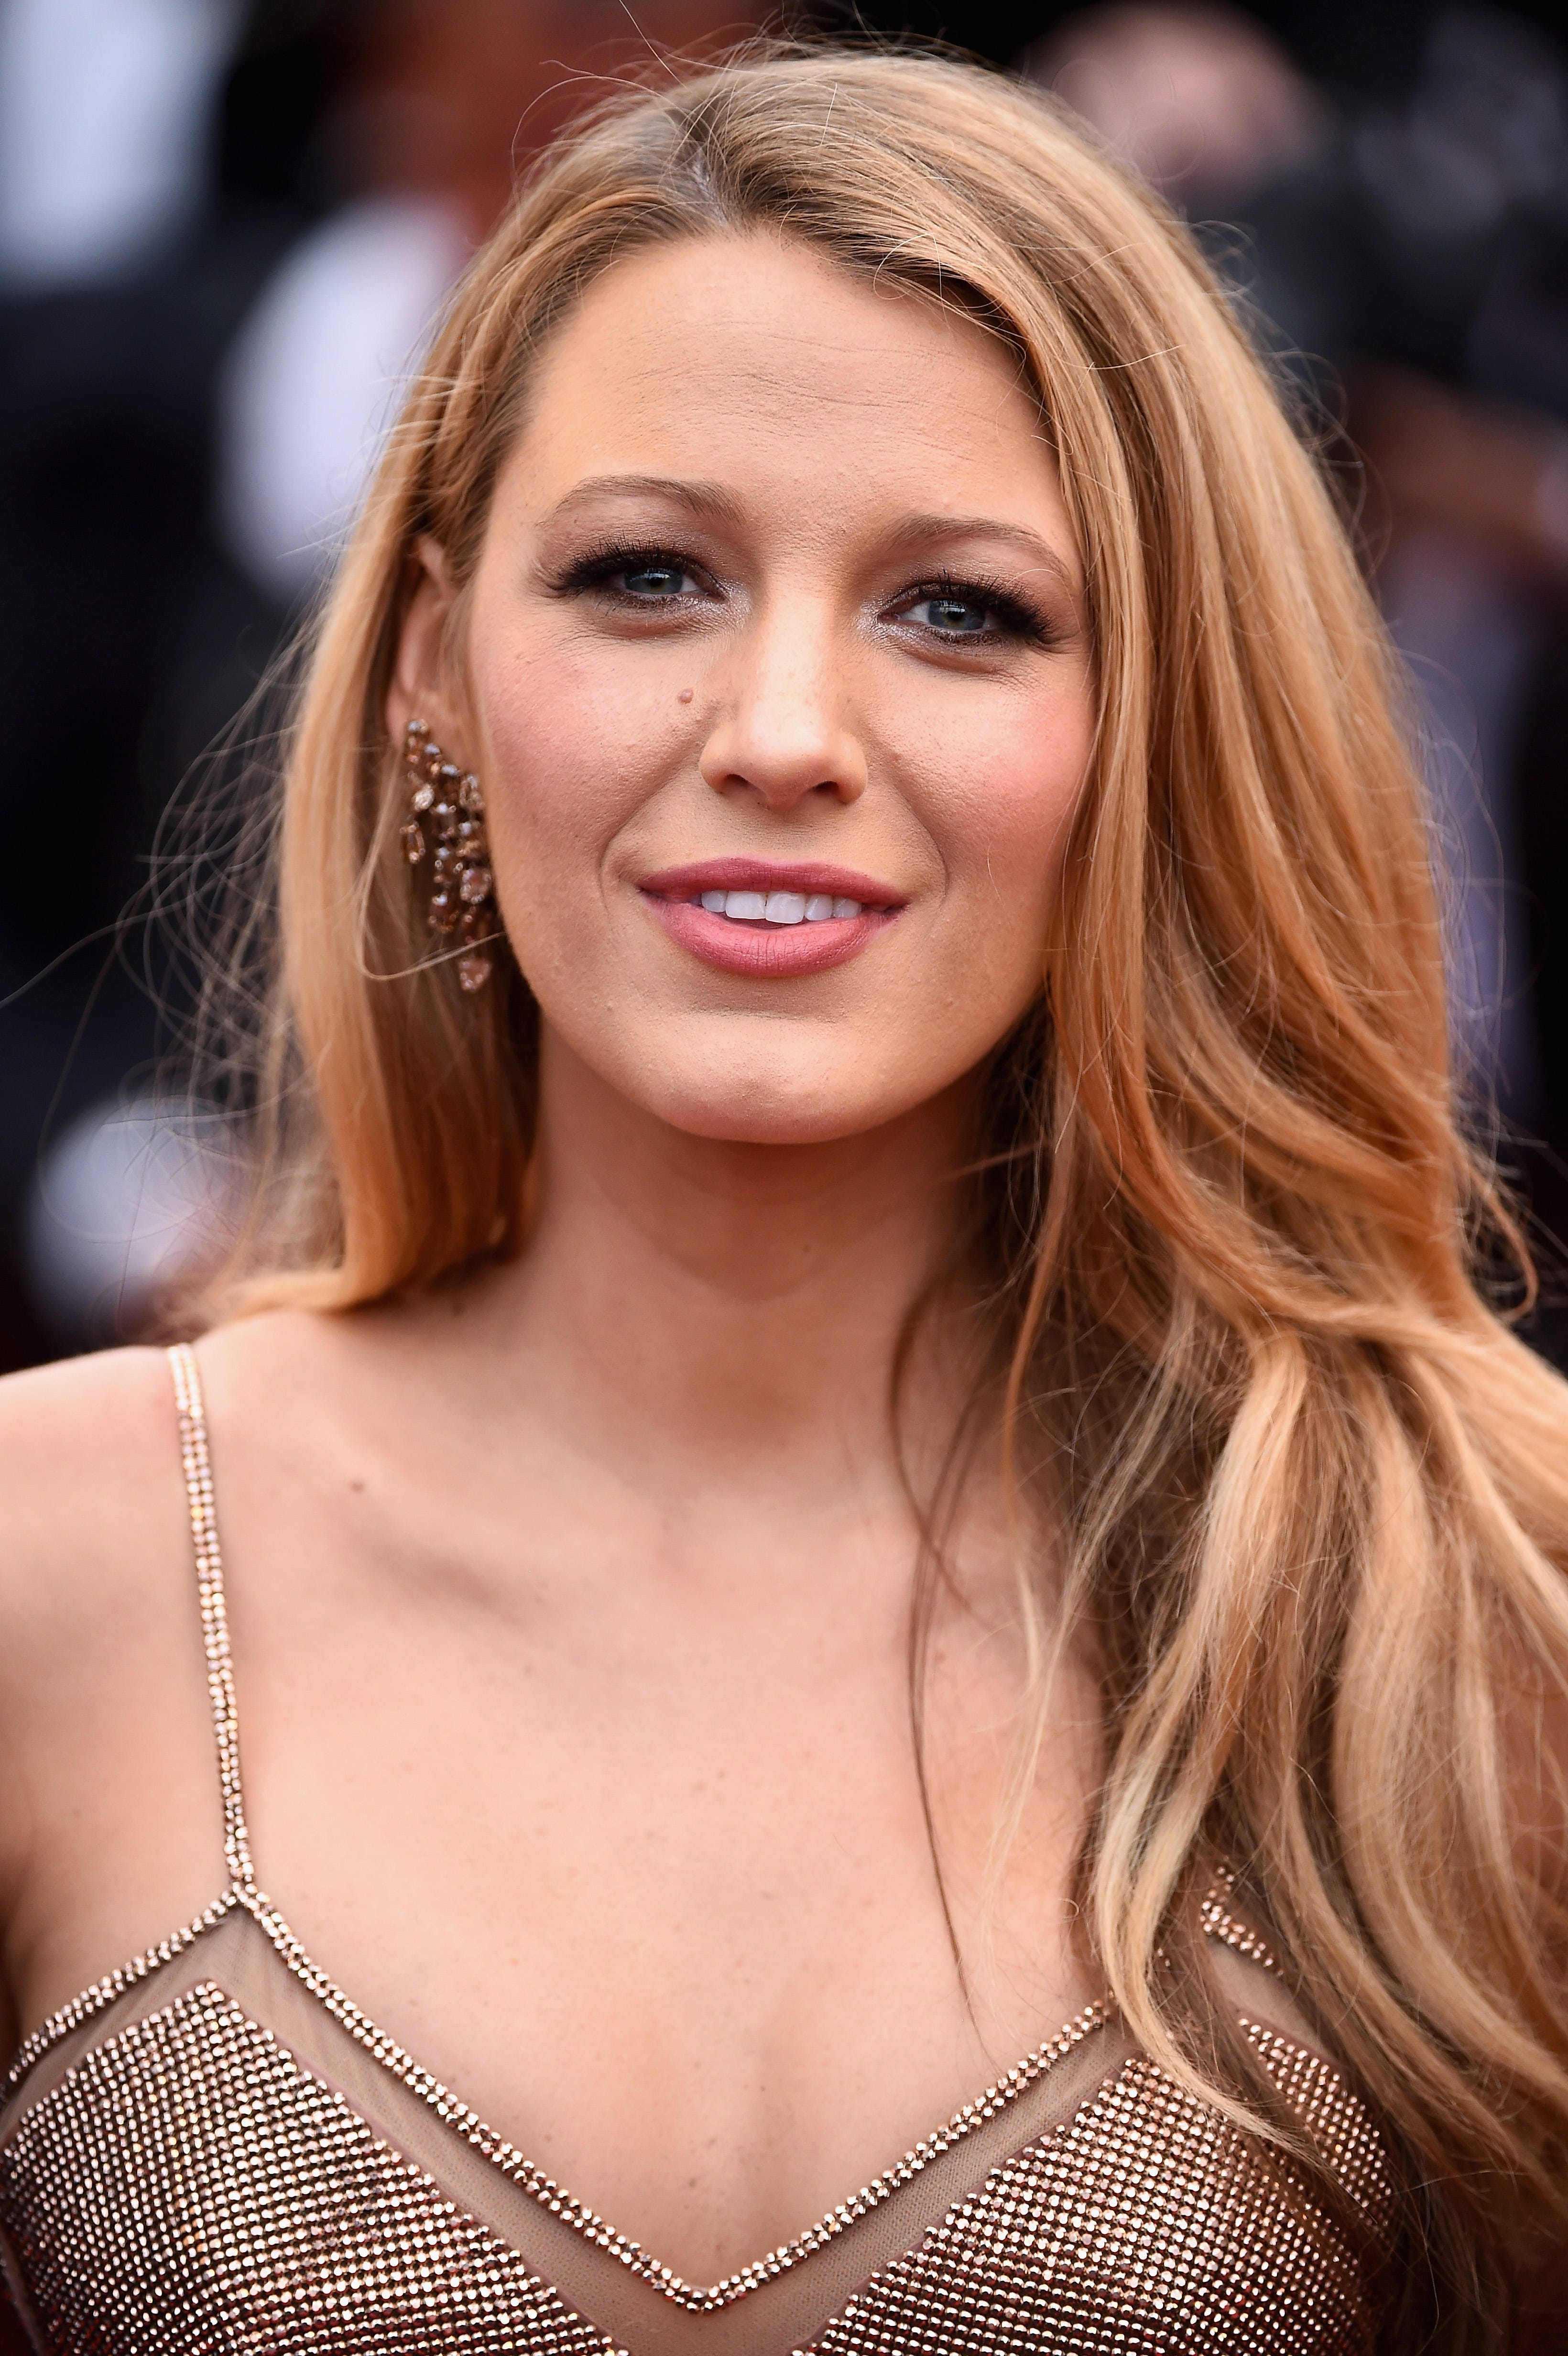 Blake Lively through the years, including some of her best style moments